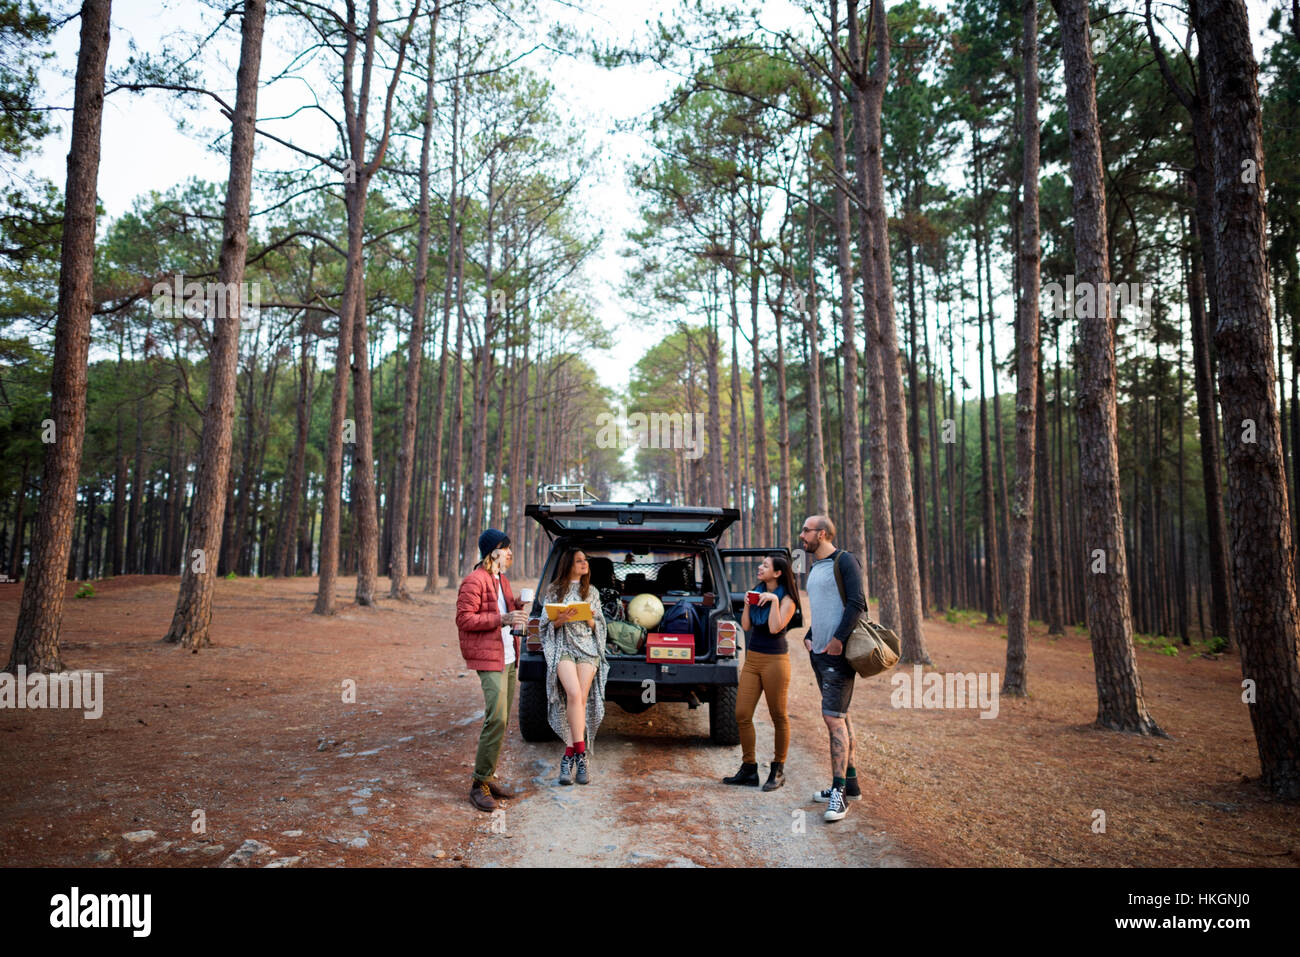 Friends Parked Car Forest Concept - Stock Image